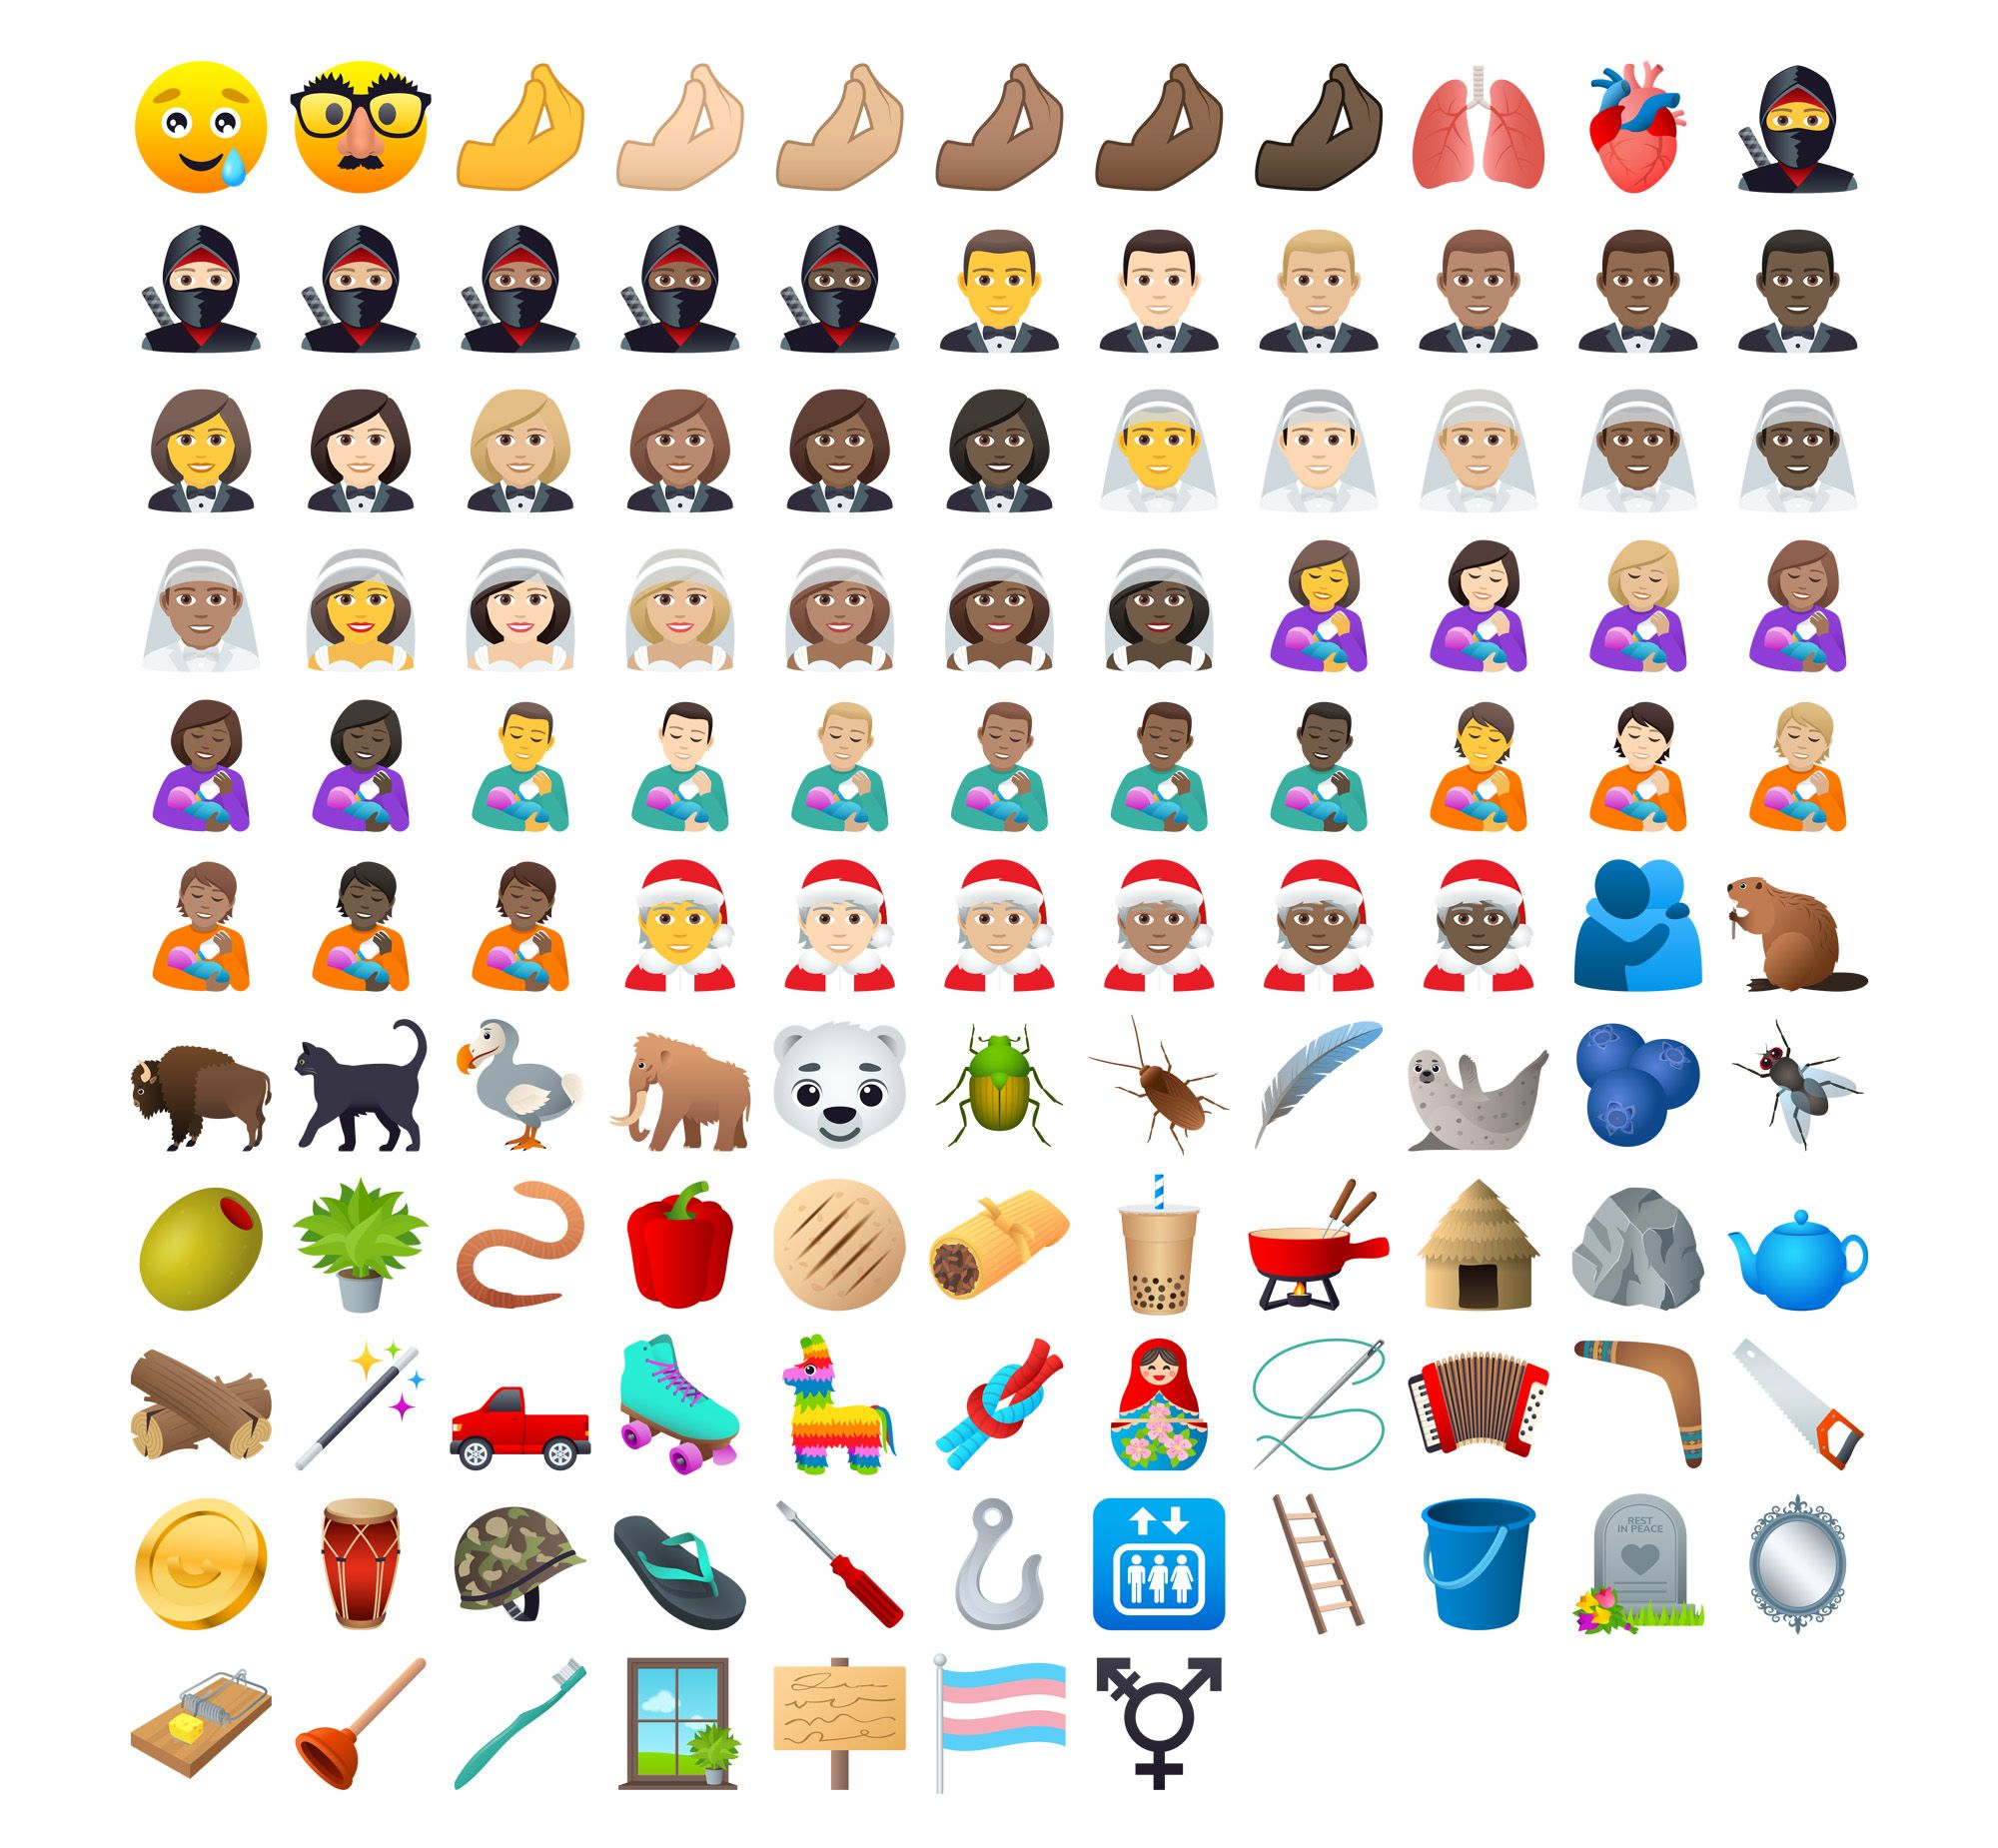 Emojipedia-JoyPixels-6.0-All-New-Emojis